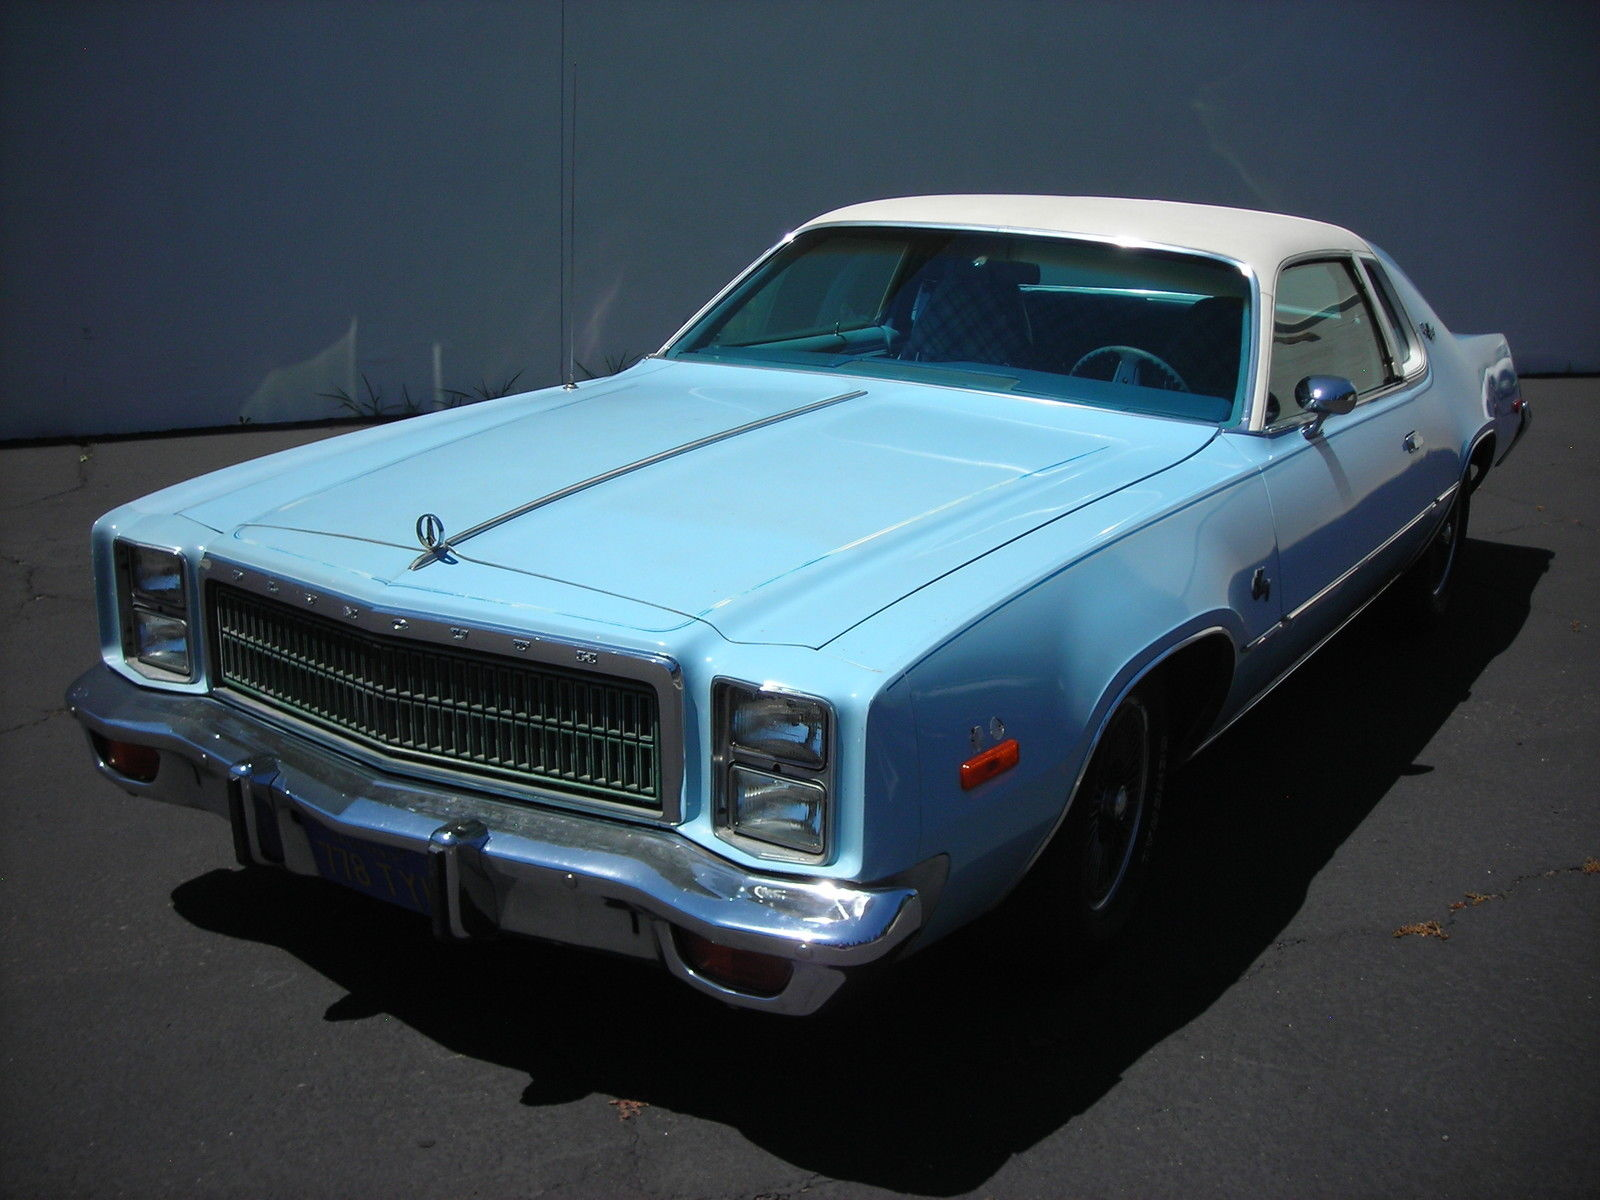 Two Door Cars All American Classic Cars 1977 Plymouth Fury Sport 2 Door